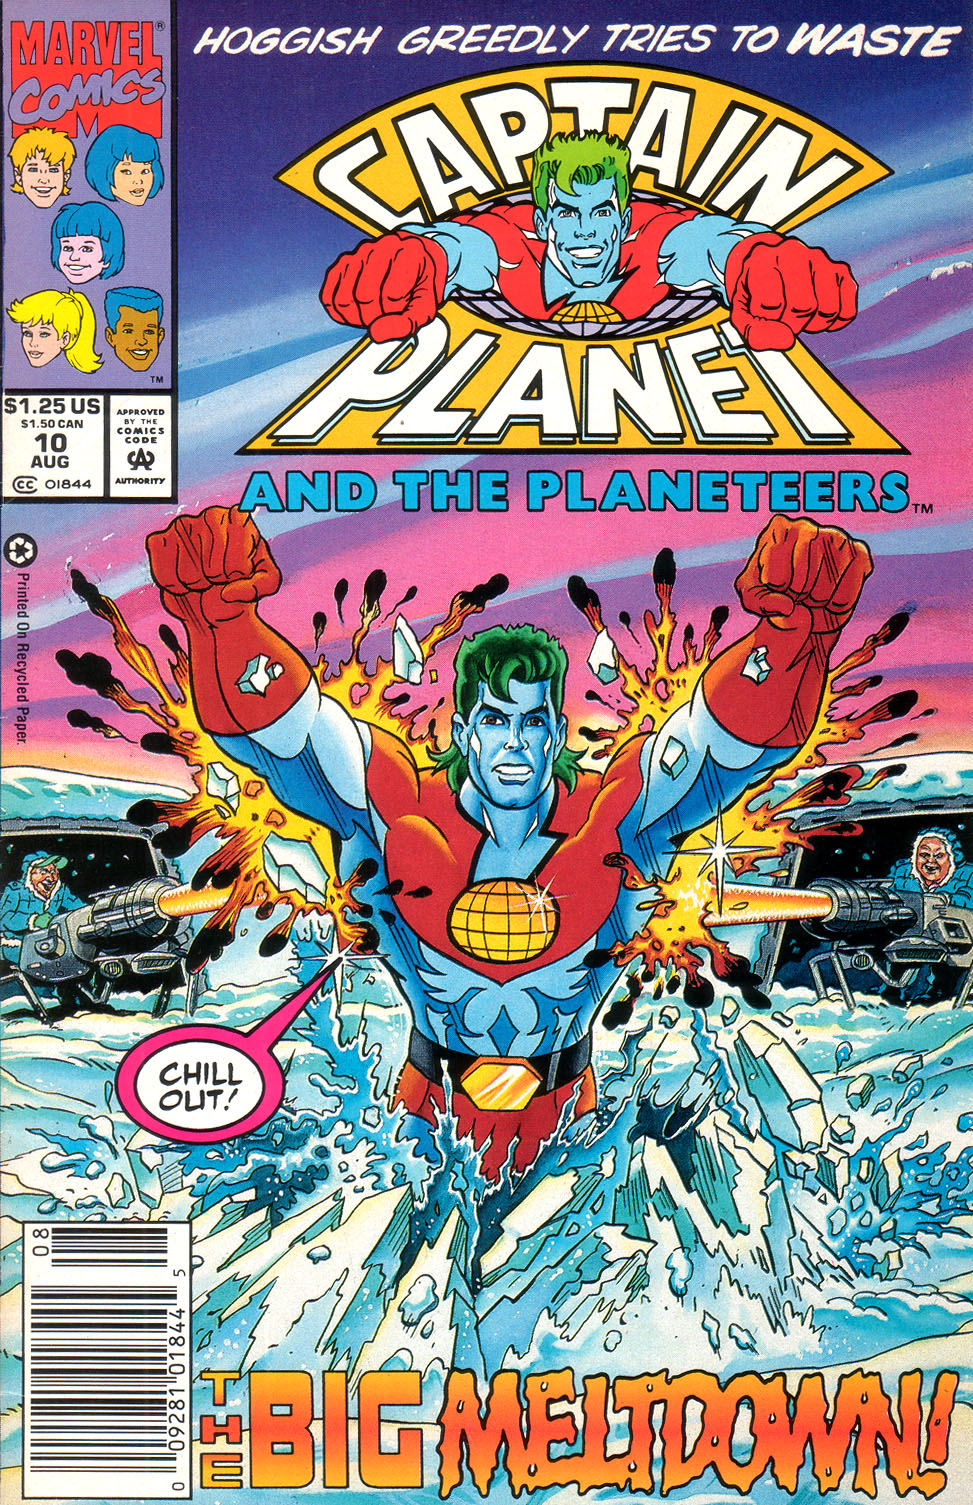 Captain Planet and the Planeteers 10 Page 1